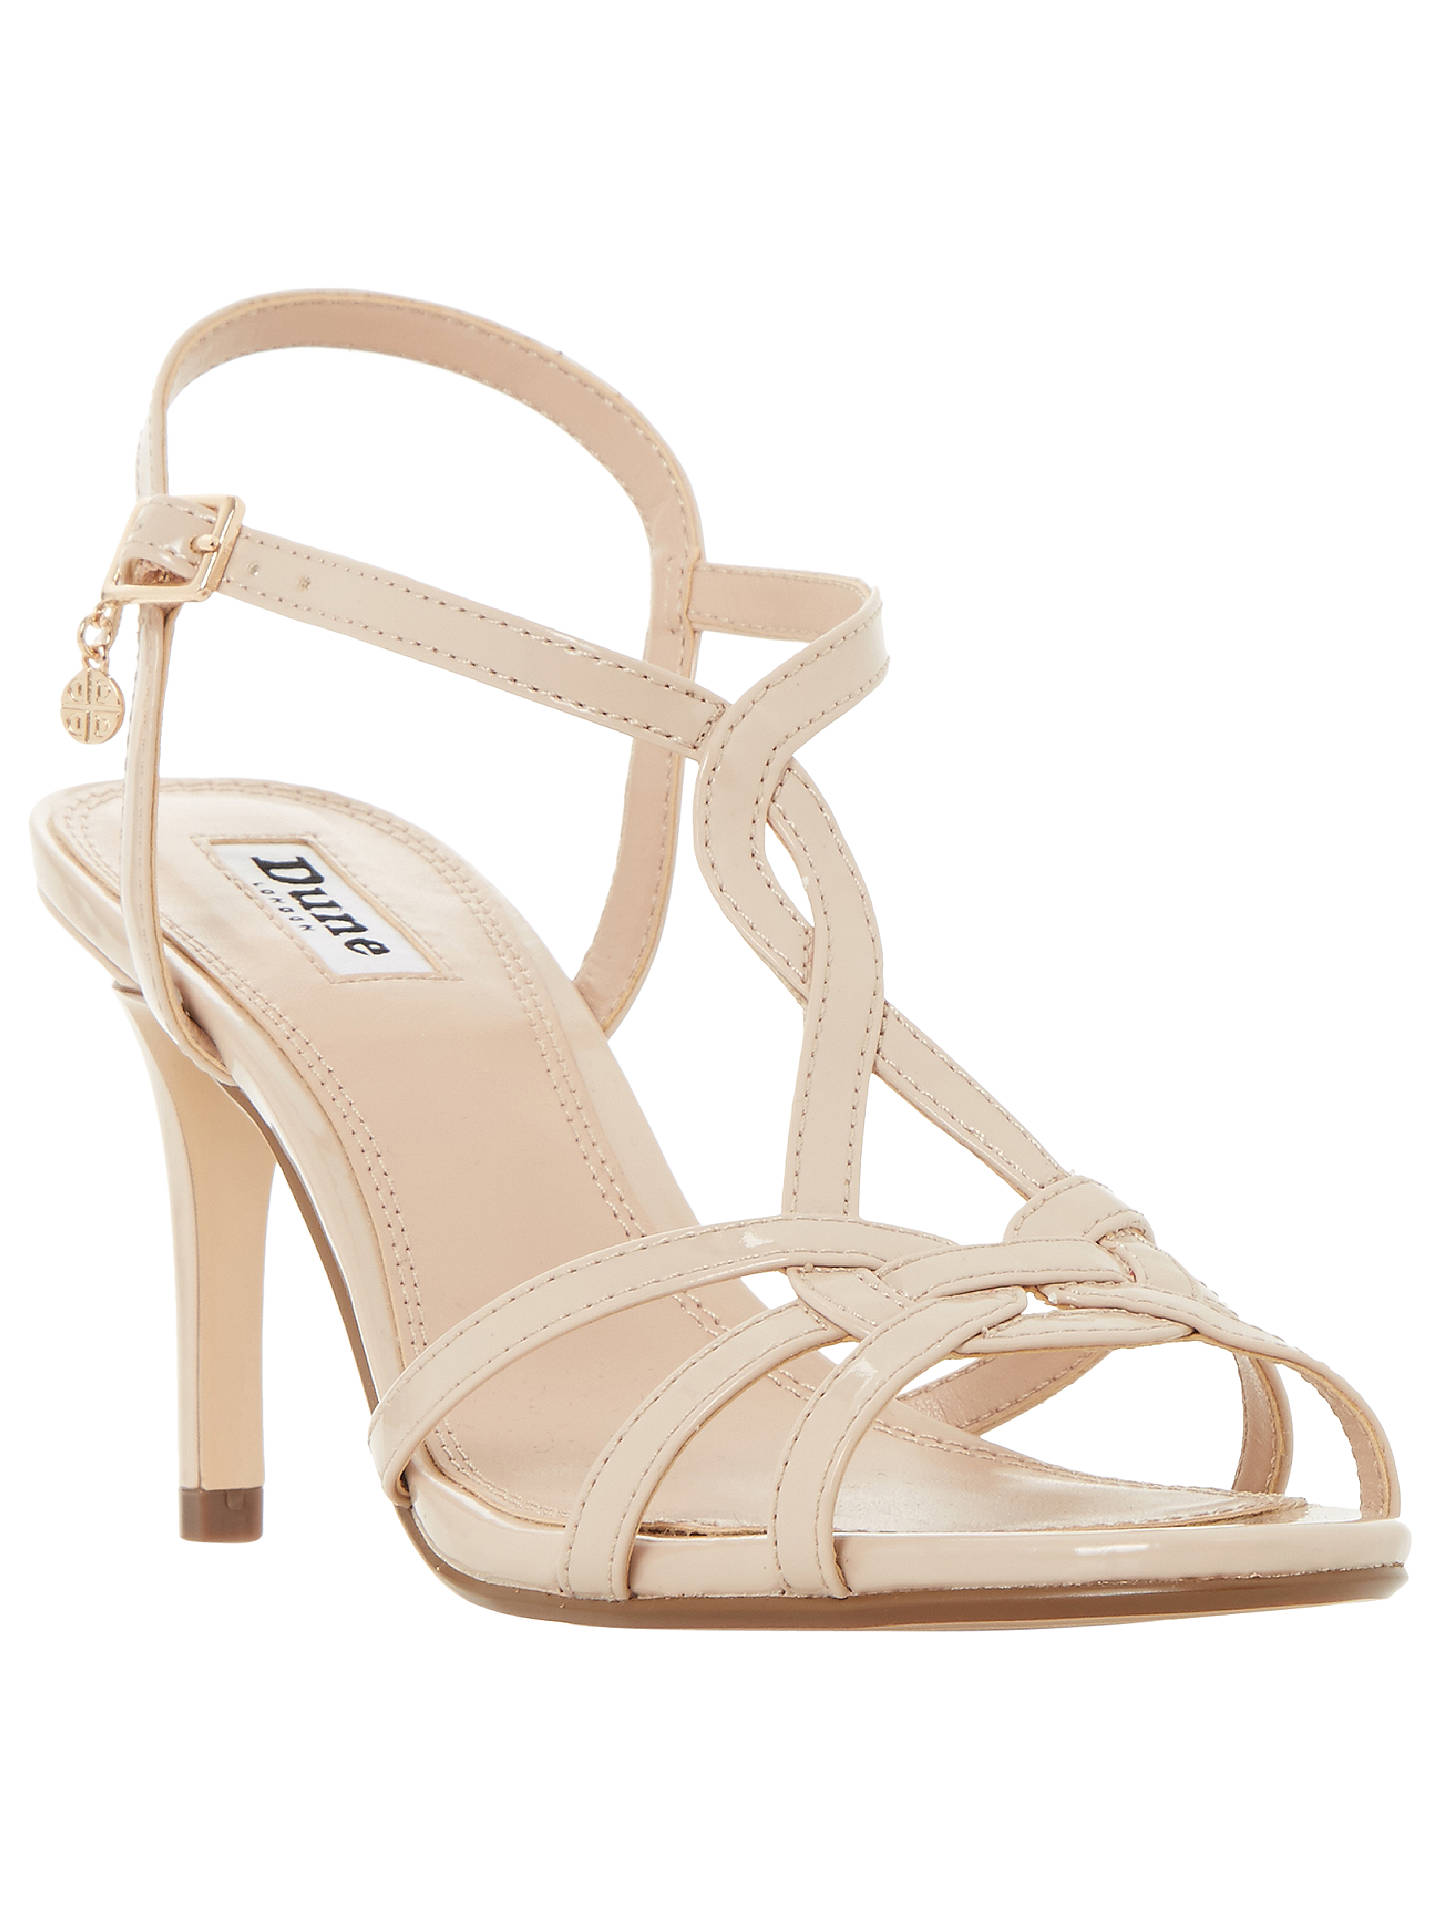 BuyDune Miniee Strappy Stiletto Sandals, Nude, 3 Online at johnlewis.com